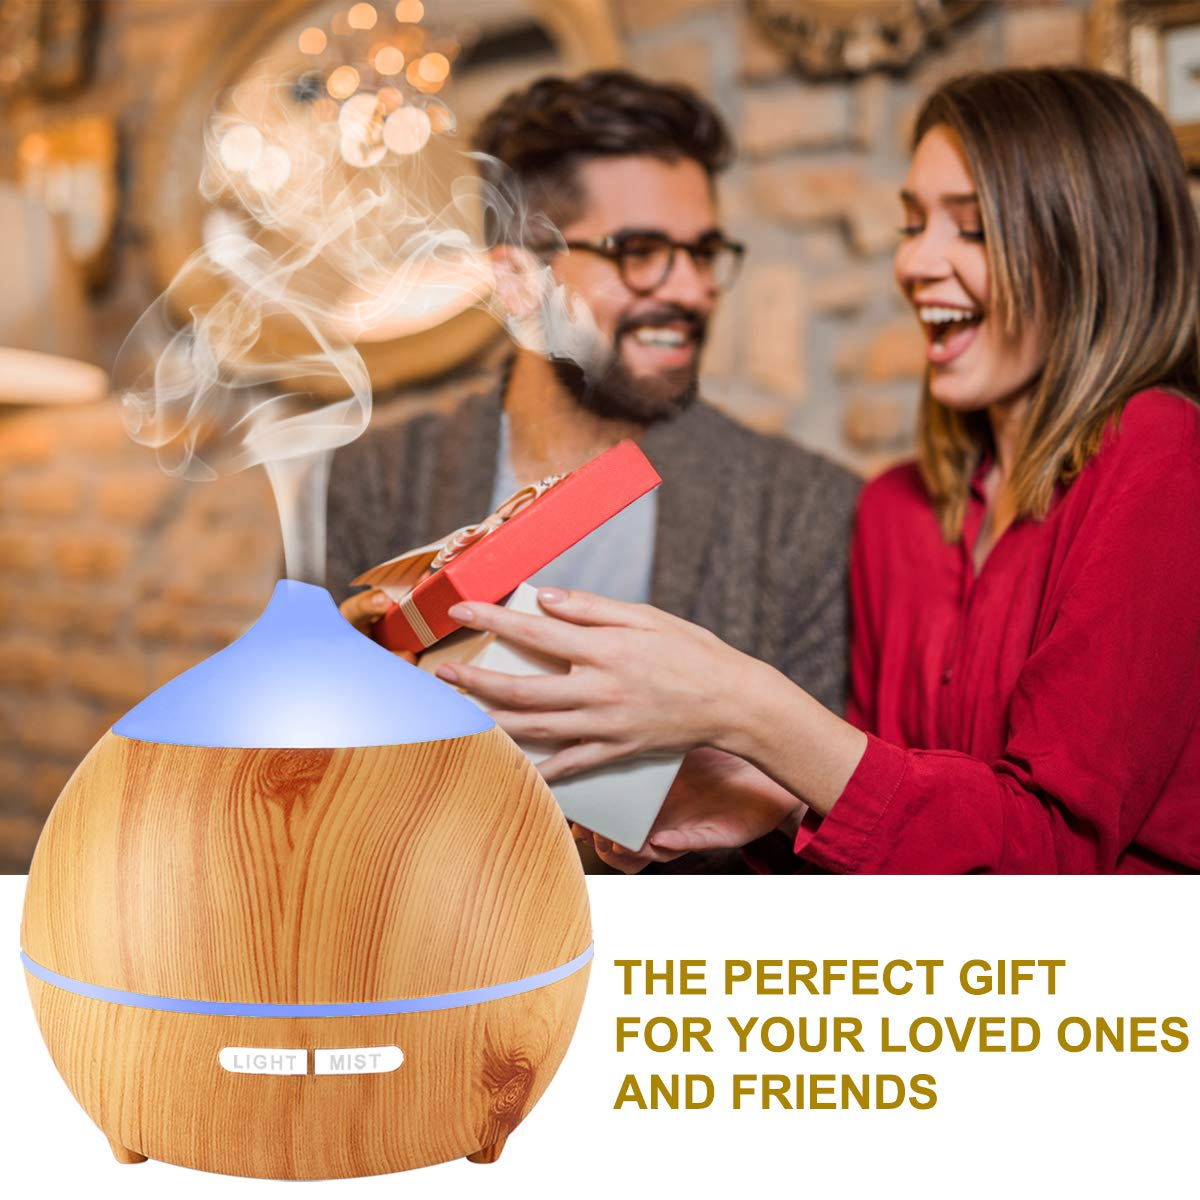 Essential Oil Diffuser XFelectronics 2 pack 250ml Diffusers for Essential Oils Wood Grain Aromatherapy Diffuser Ultrasonic Humidifier with Waterless Auto Shut off, 7 Colors Light for Home Office Baby by Xfelec (Image #7)